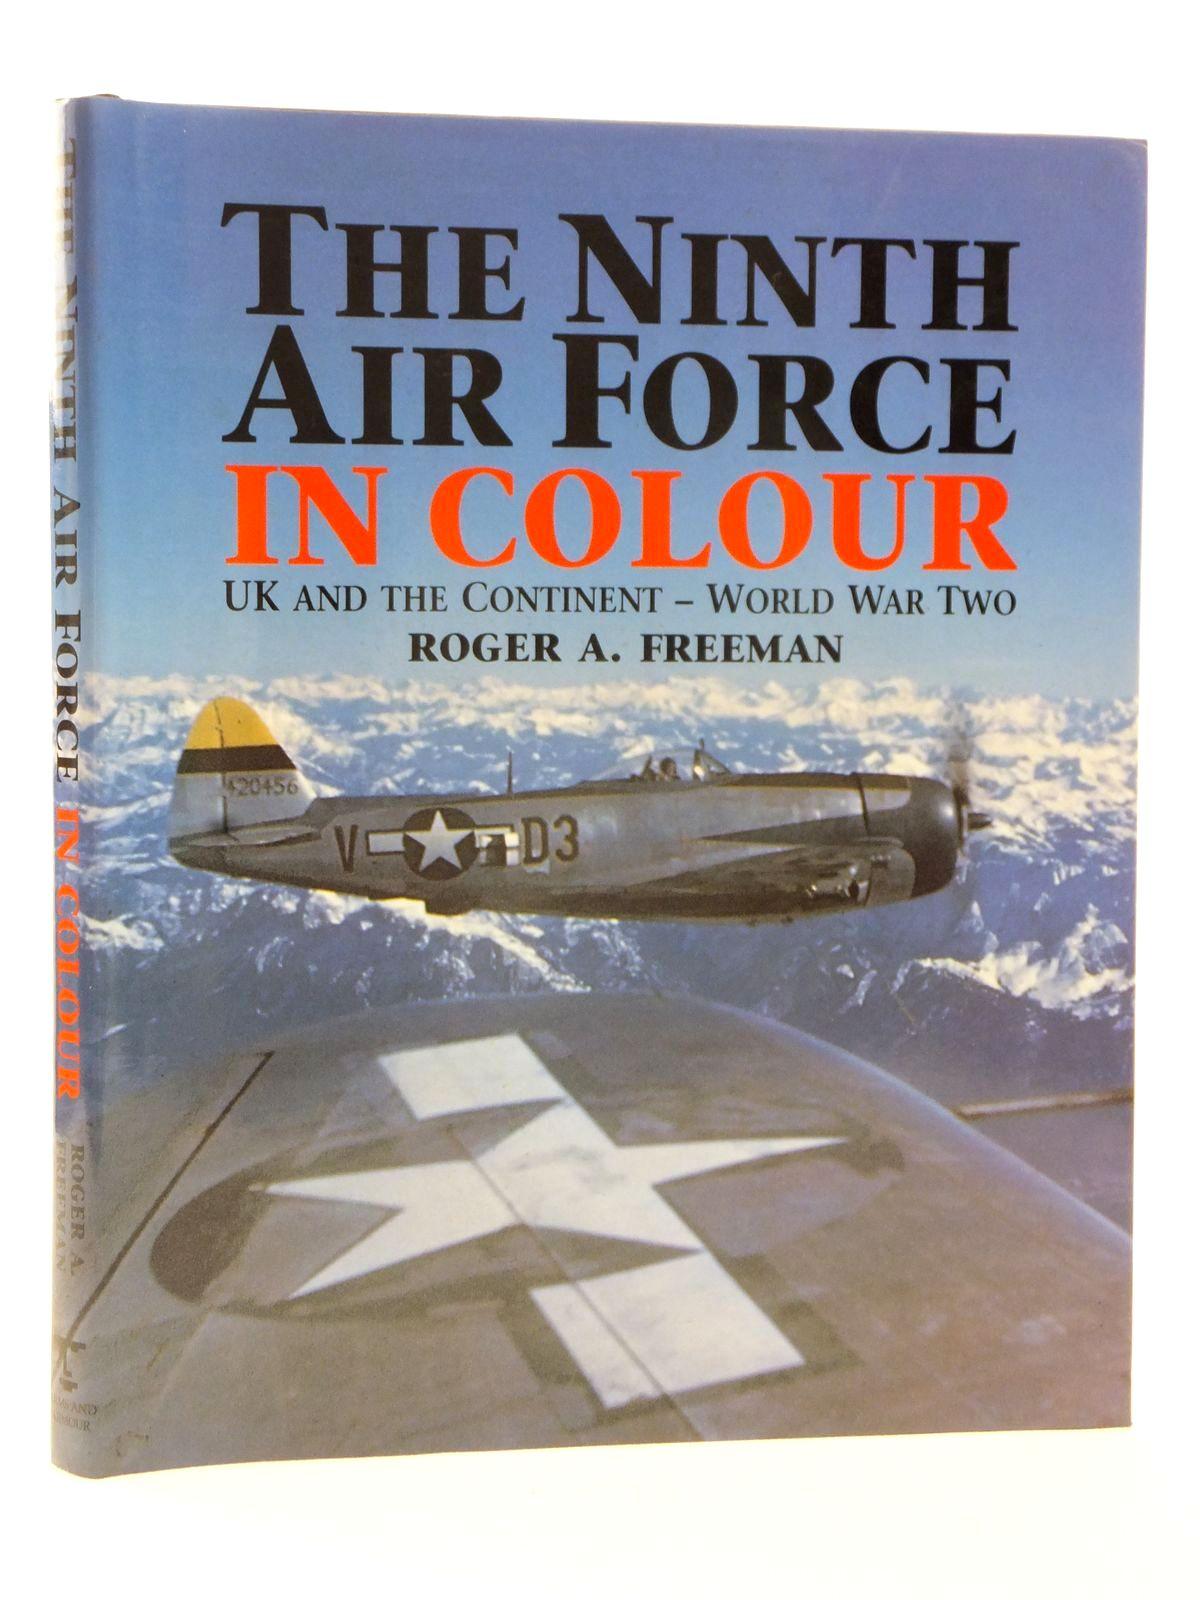 Photo of THE NINTH AIR FORCE IN COLOUR UK AND THE CONTINENT - WORLD WAR TWO written by Freeman, Roger A. published by Arms & Armour Press (STOCK CODE: 1608951)  for sale by Stella & Rose's Books